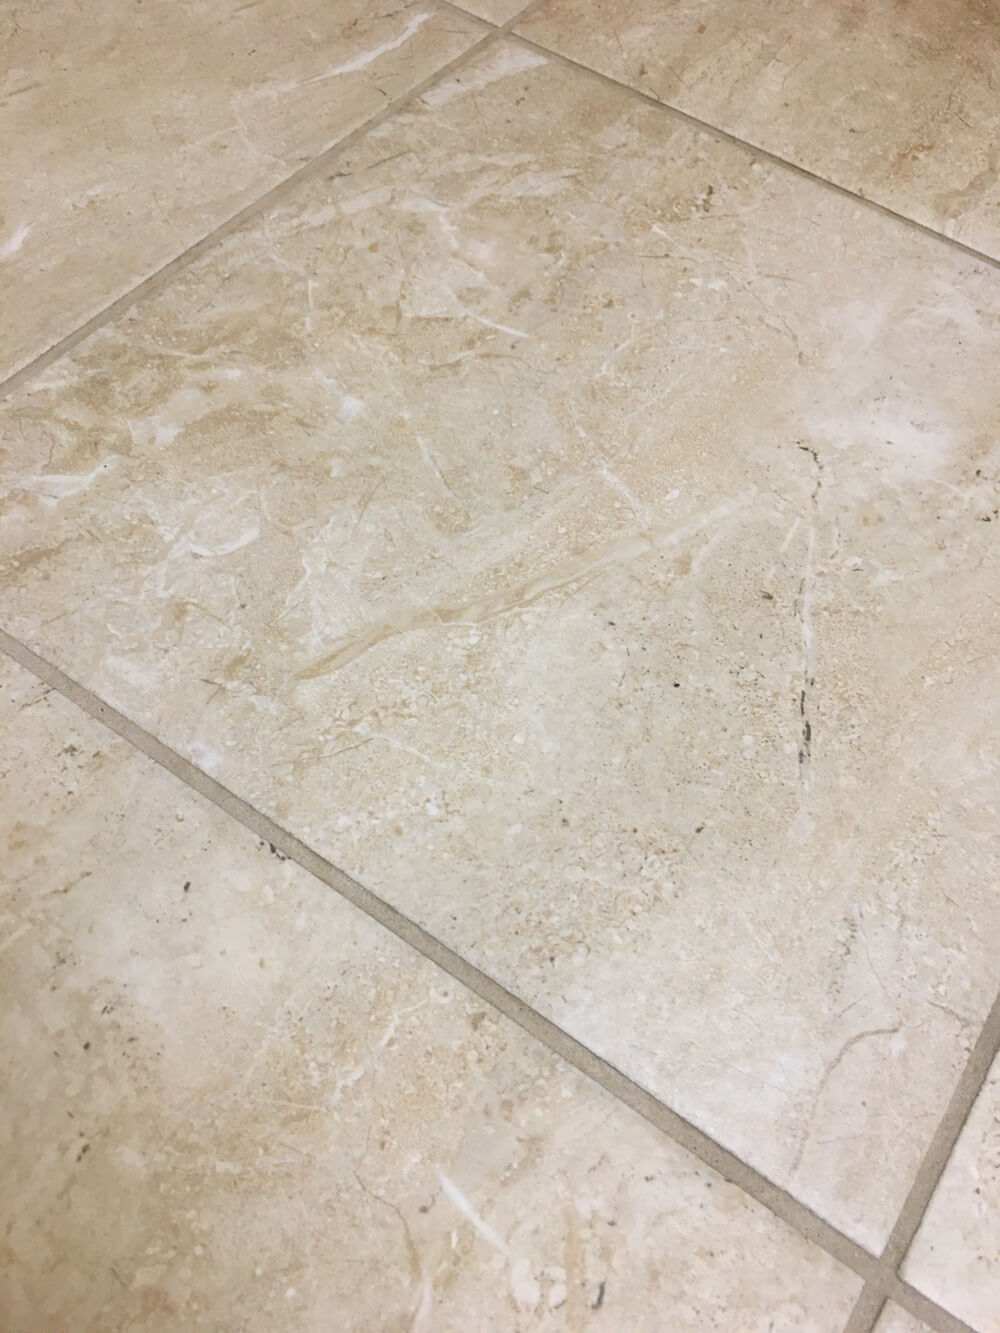 dirty bathroom tile floors